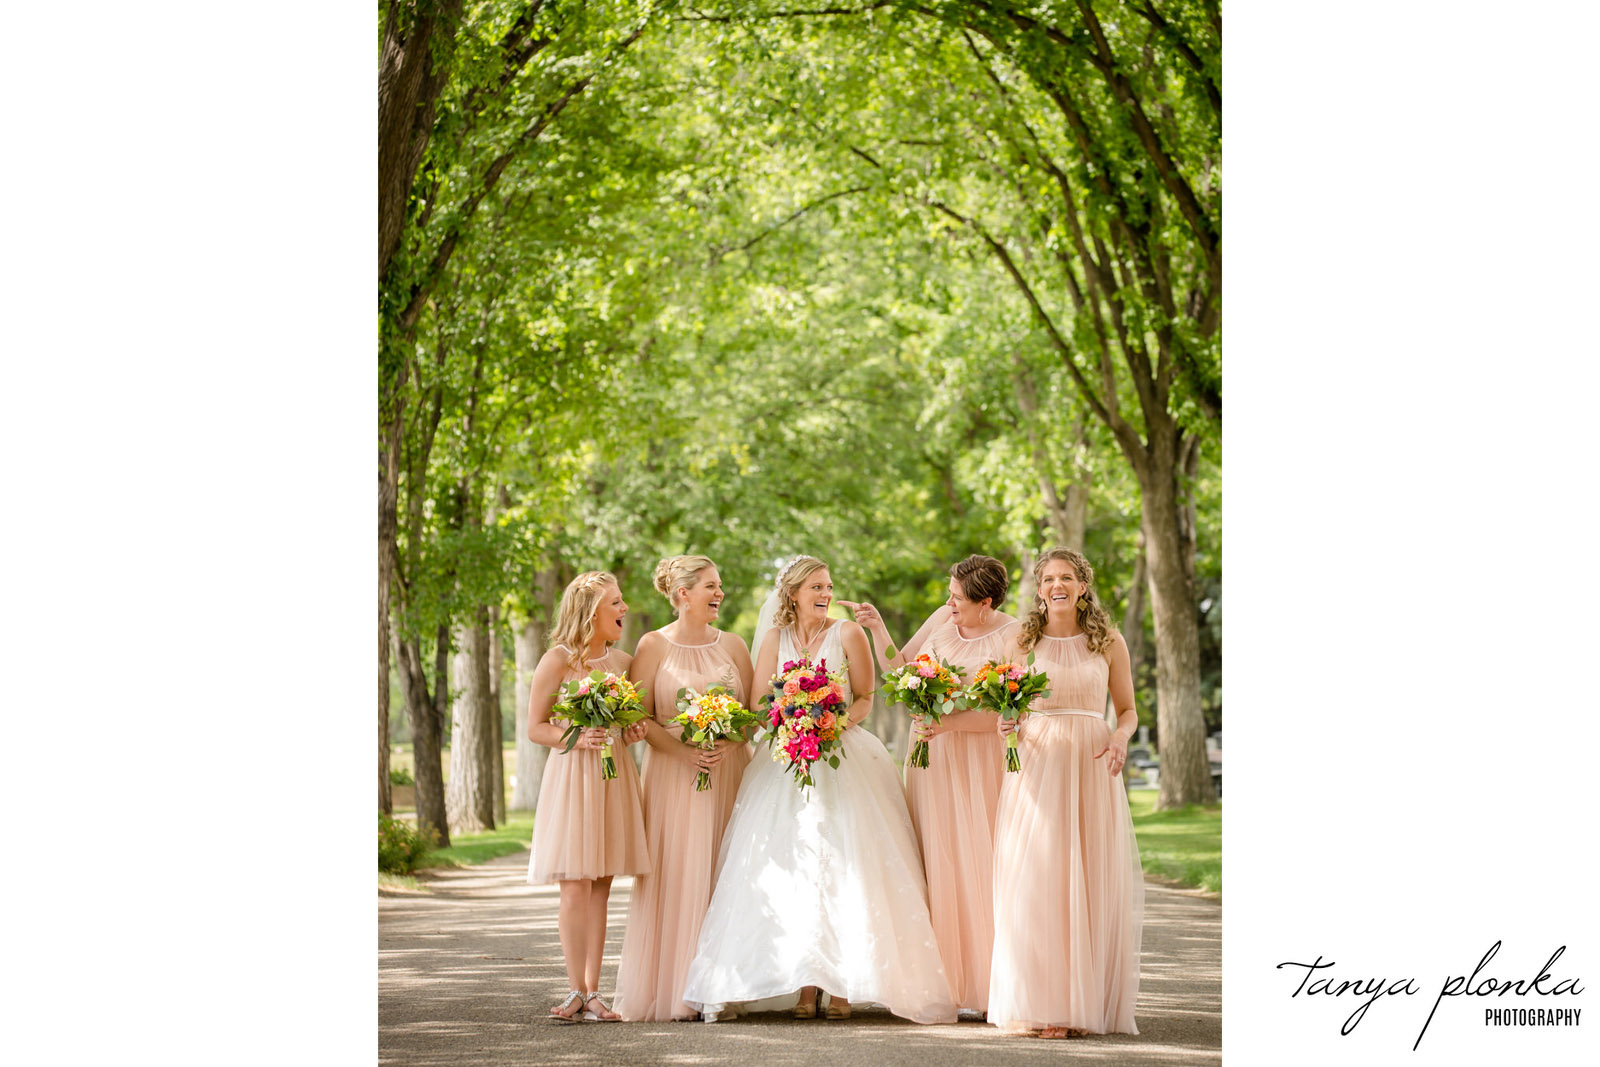 Bride and bridesmaids in light pink dresses stand in tree lined street laughing